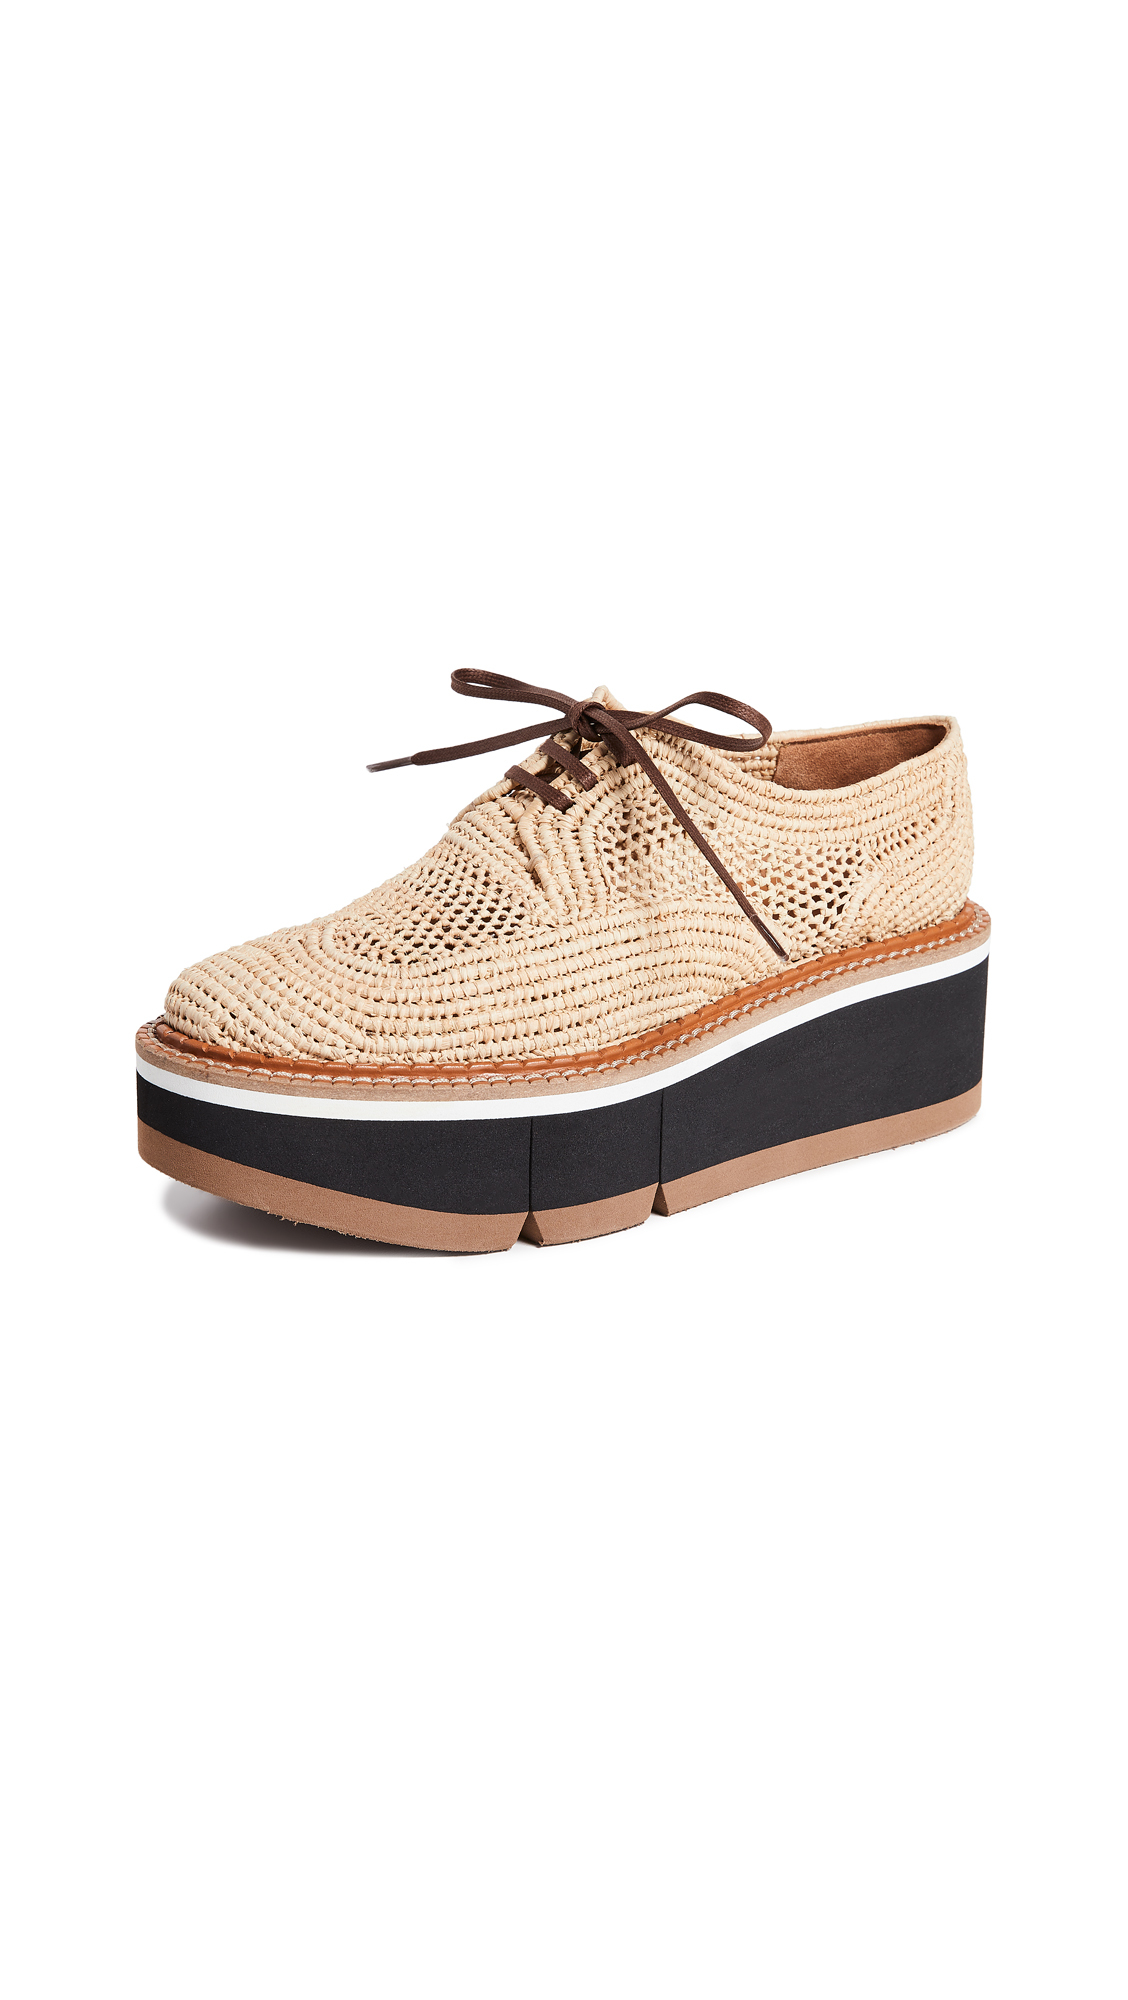 Acajou Raffia Platform Loafers in Natural